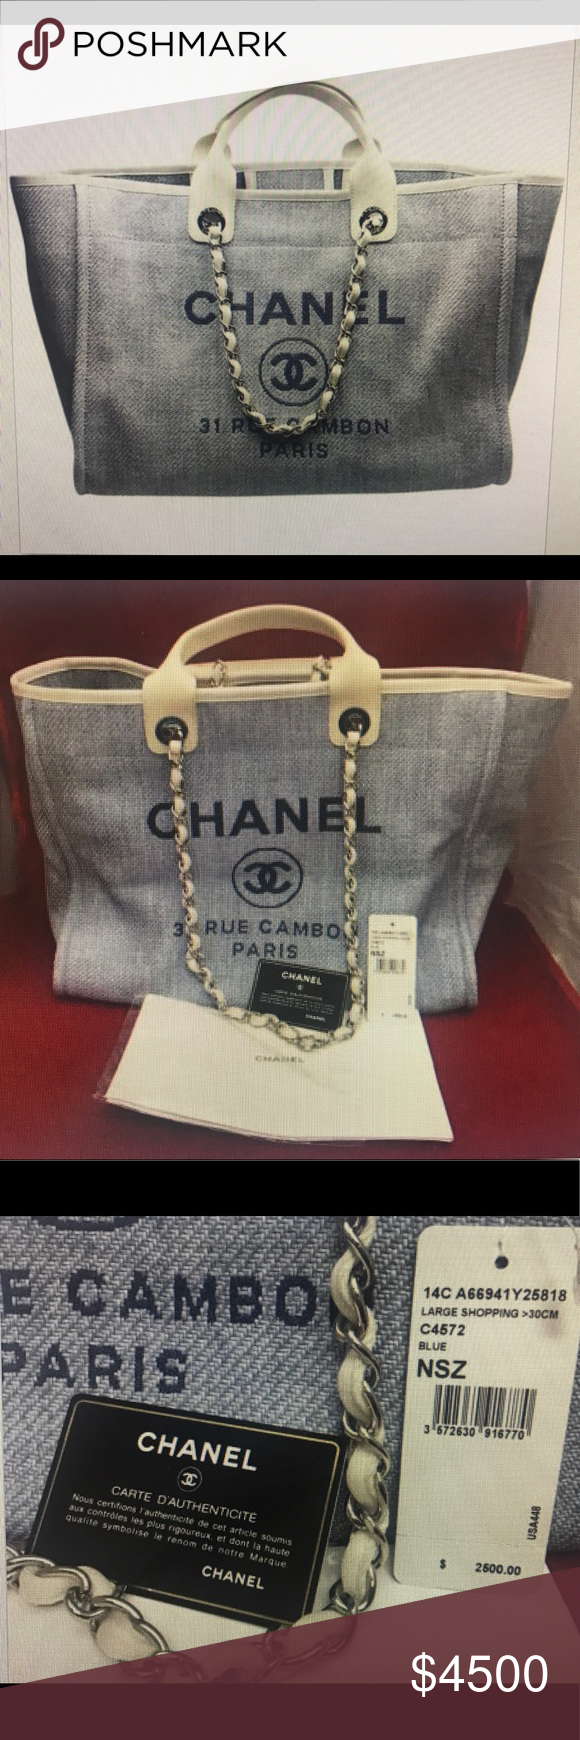 c5bb39f1df Chanel Light Blue Deauville 2 way Tote Canvas Bag Brand New Authentic Chanel  Deauville Large Light